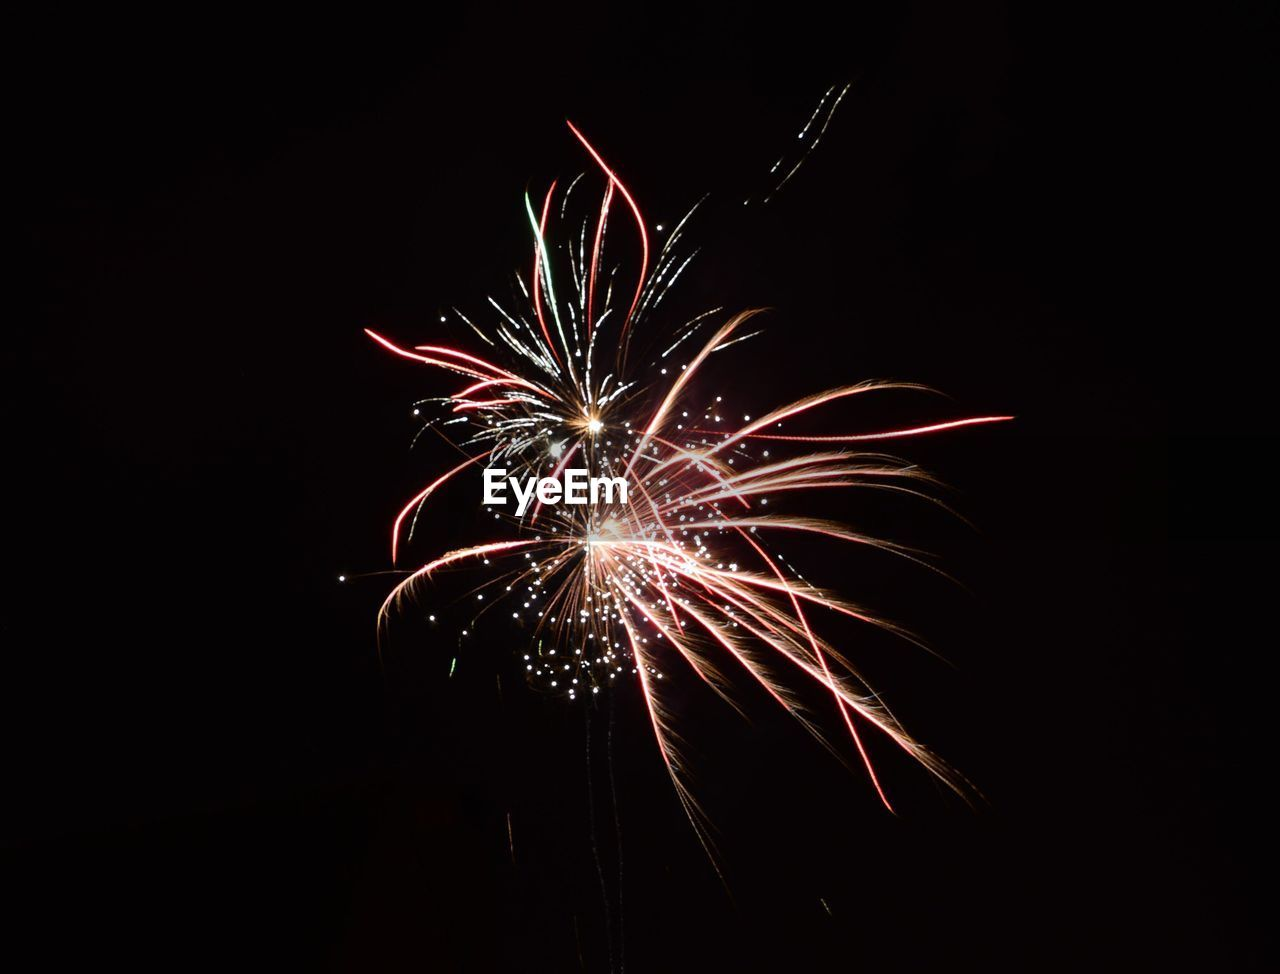 firework display, celebration, firework - man made object, night, exploding, arts culture and entertainment, long exposure, low angle view, motion, illuminated, glowing, event, no people, multi colored, blurred motion, firework, outdoors, sky, clear sky